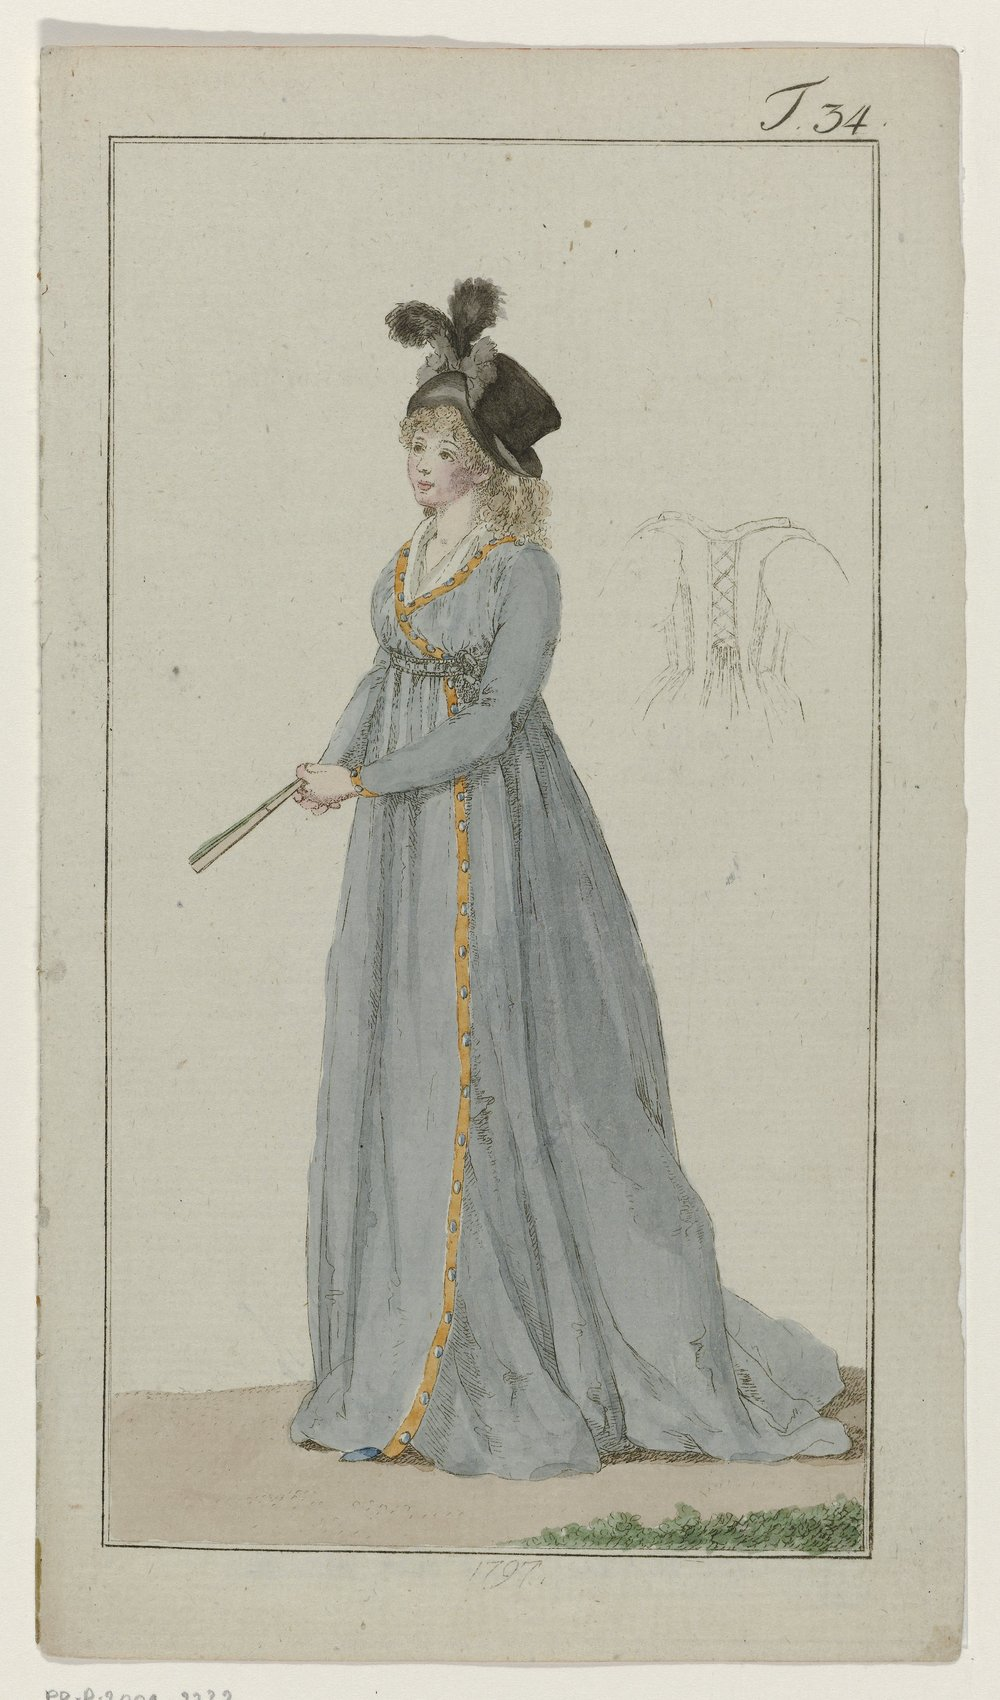 Journal des Luxus und der Moden, 1797, T 34, Georg Melchior Kraus, 1797 - I love this early style dress. The color and the way it closes. I also love the hate. basically everything about this I love. I also assume it laces inside the back to tighten?